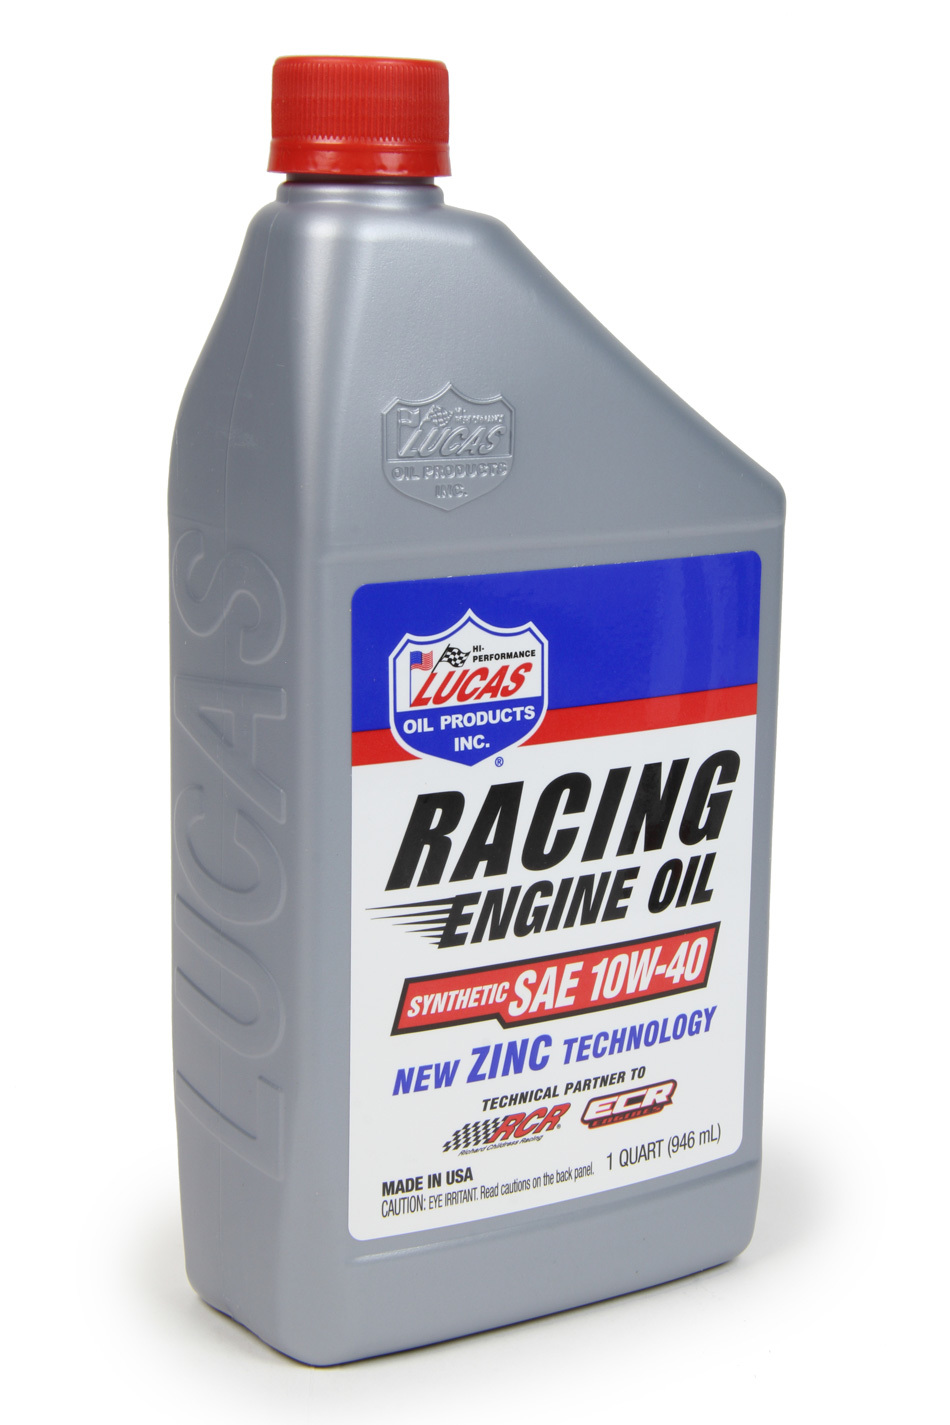 10w40 Synthetic Racing Oil 1 Quart